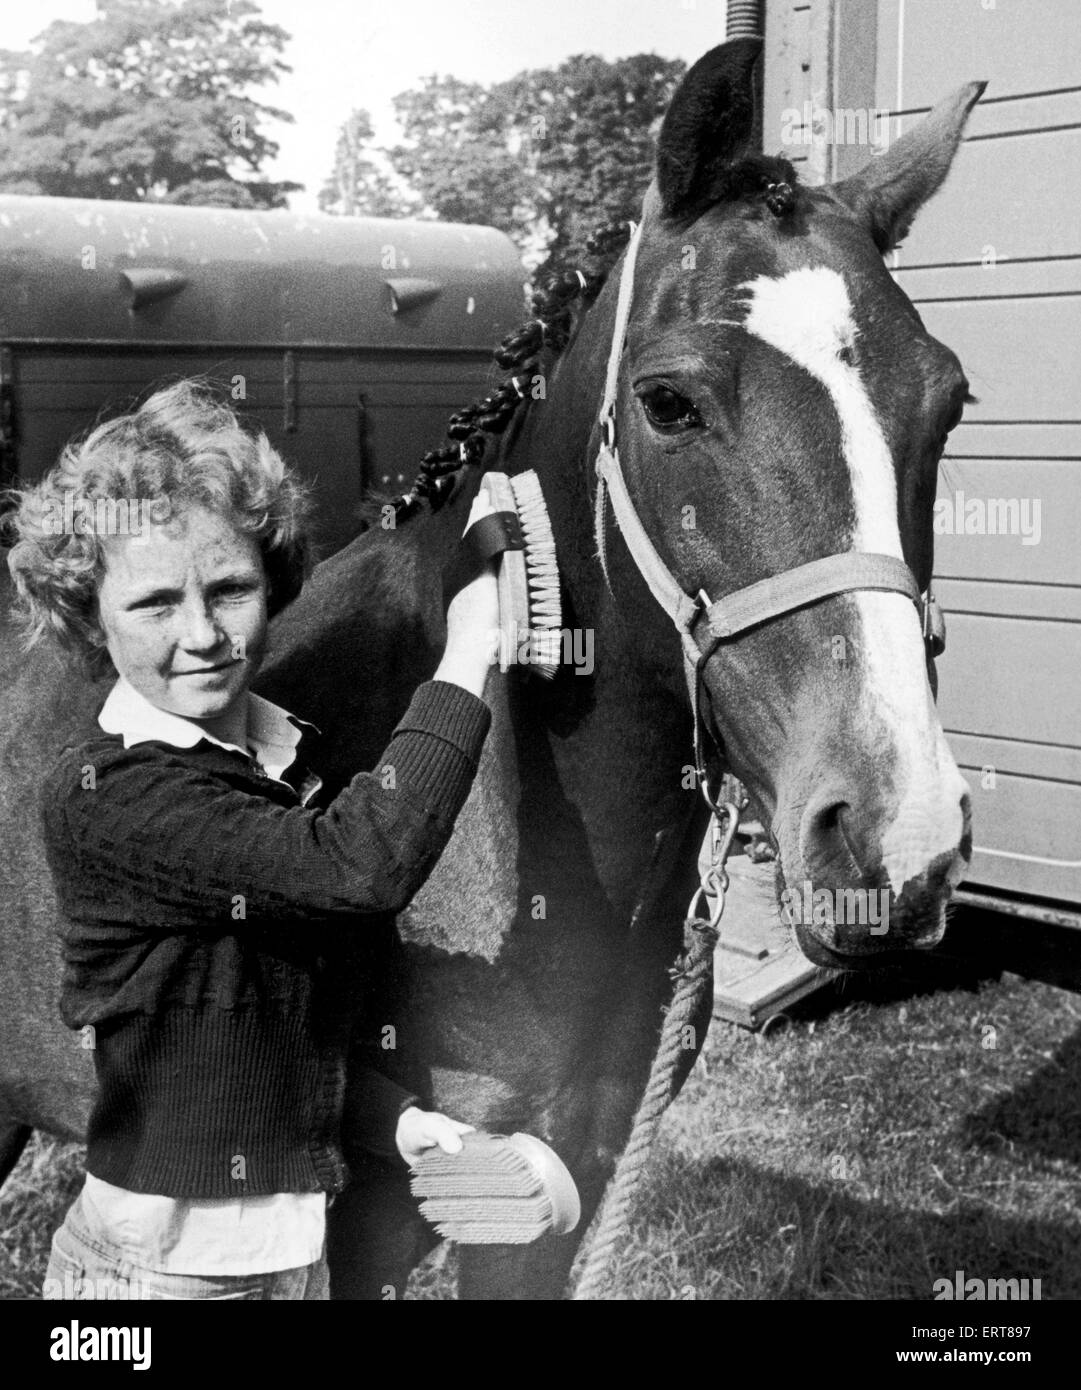 14 ans Julie Simpson brosser un cheval à Hutton Rudby salon de l'agriculture. 28 août 1978. Photo Stock